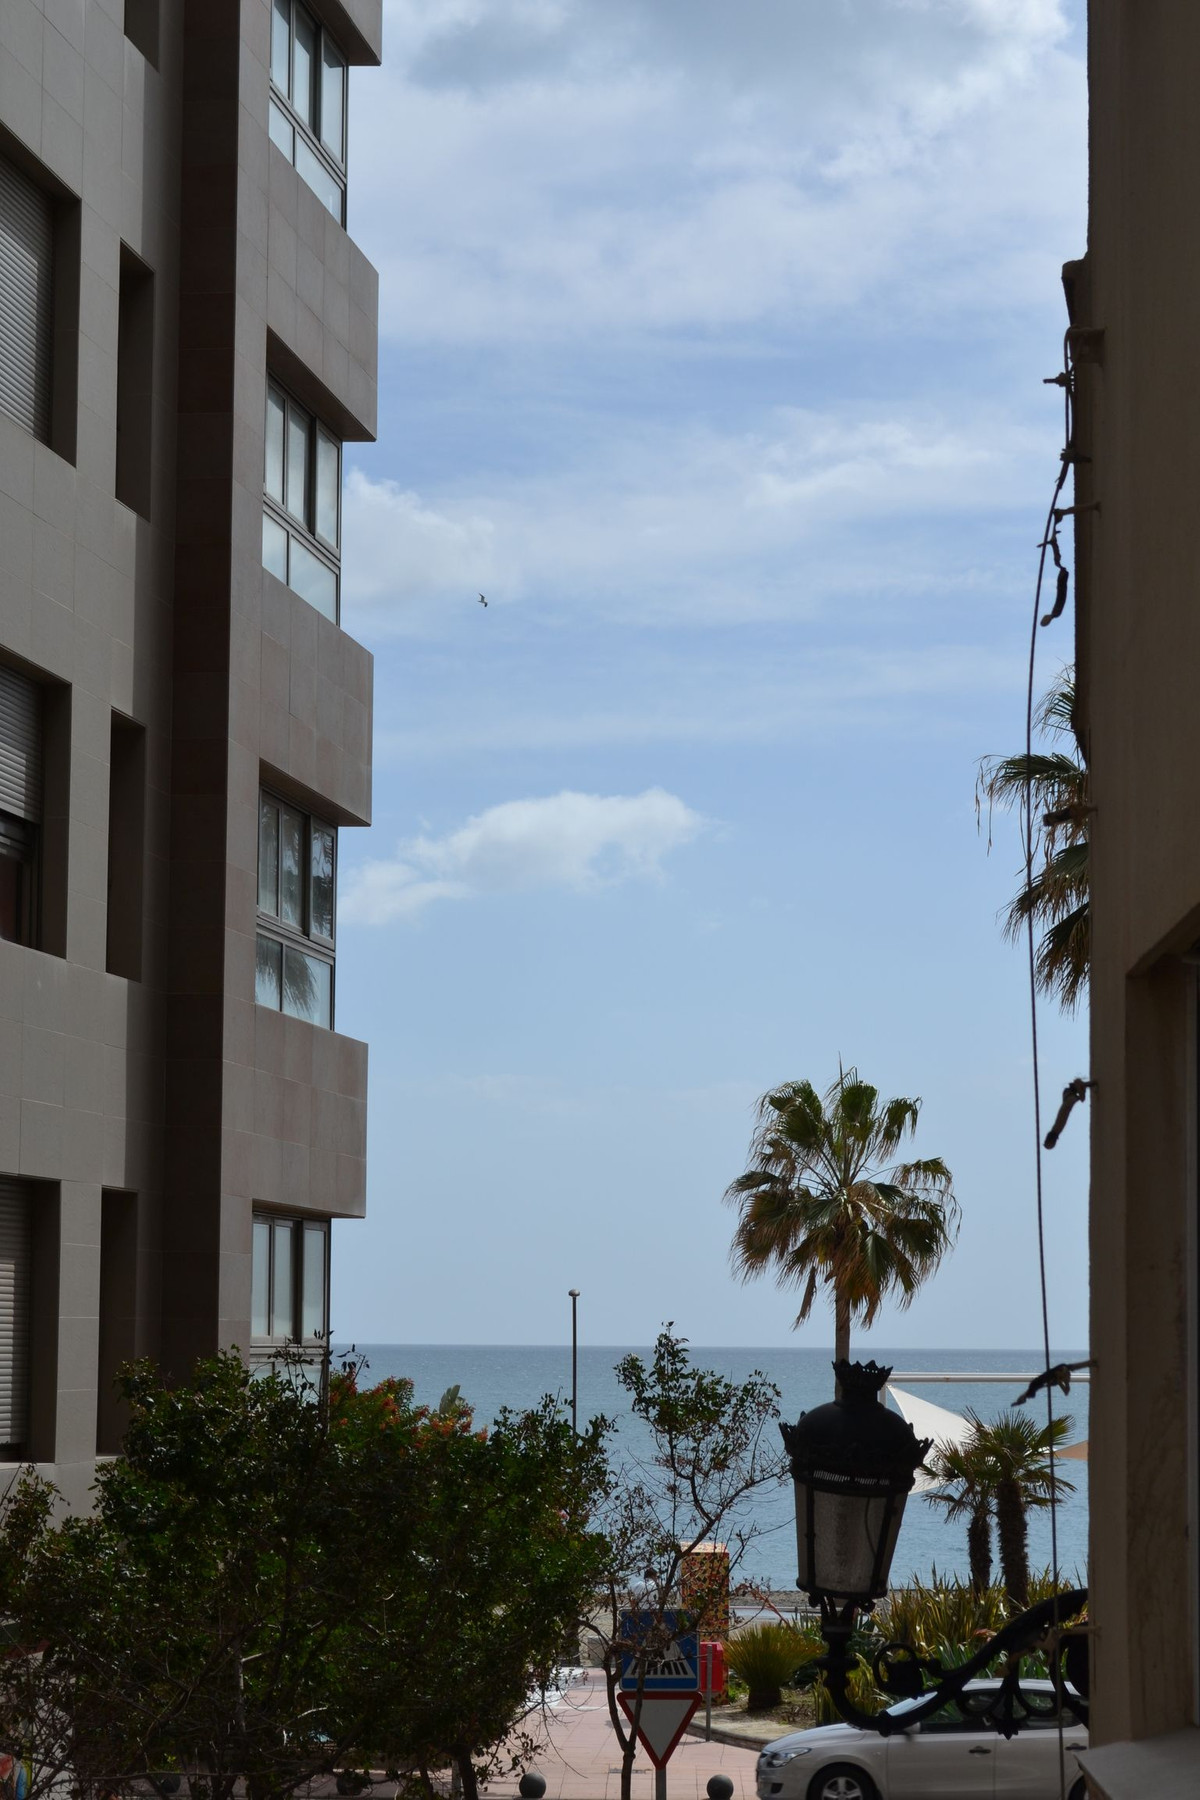 You have found a gem in the HEART OF ESTEPONA!